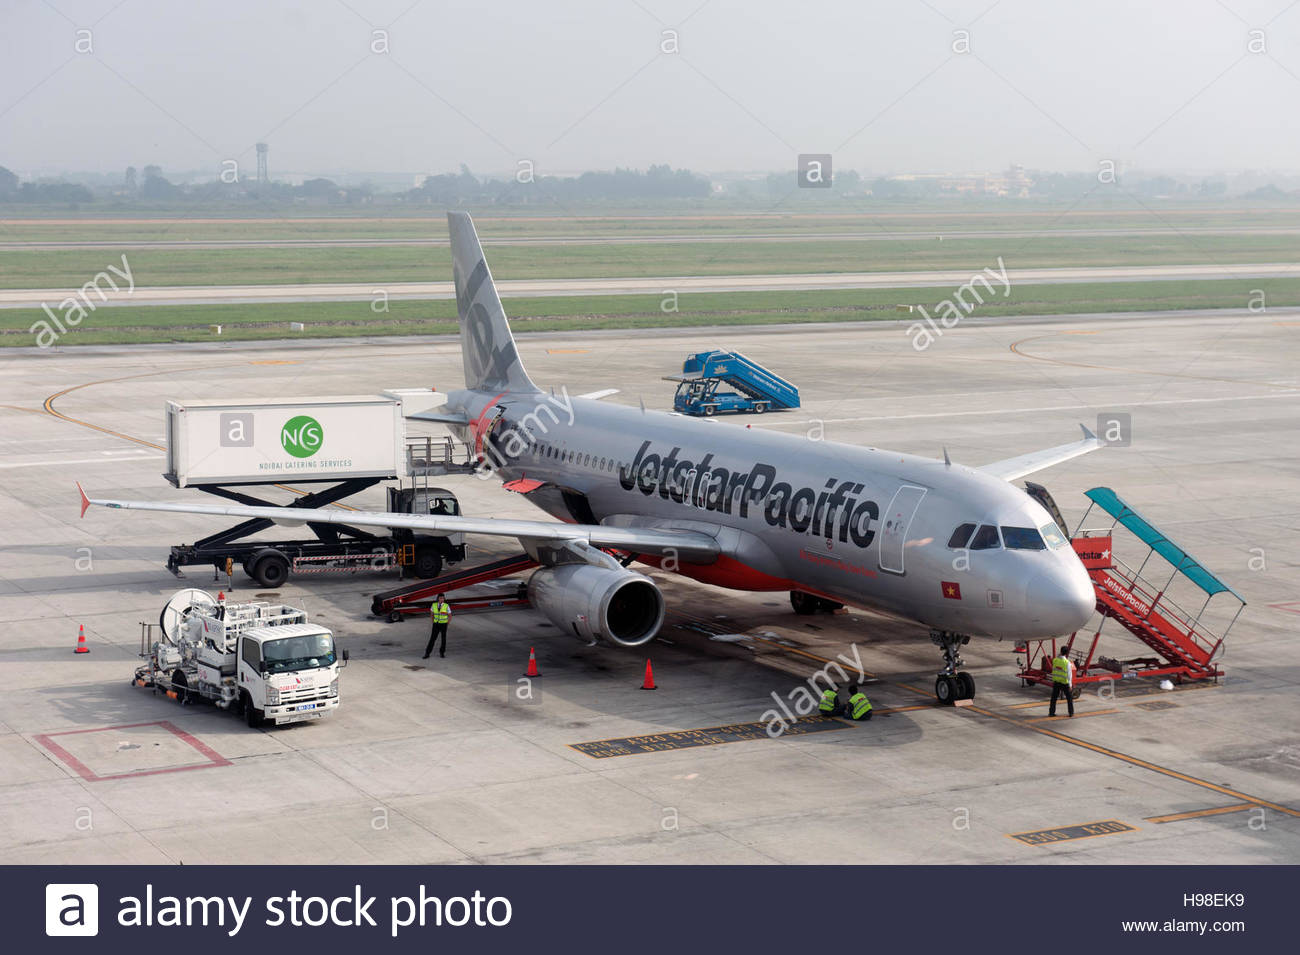 Ha Noi Vietnam. Jetstar Pacific aircraft on the apron at Nội Bài International Airport. VN-A556 Airbus A320 - Stock Image